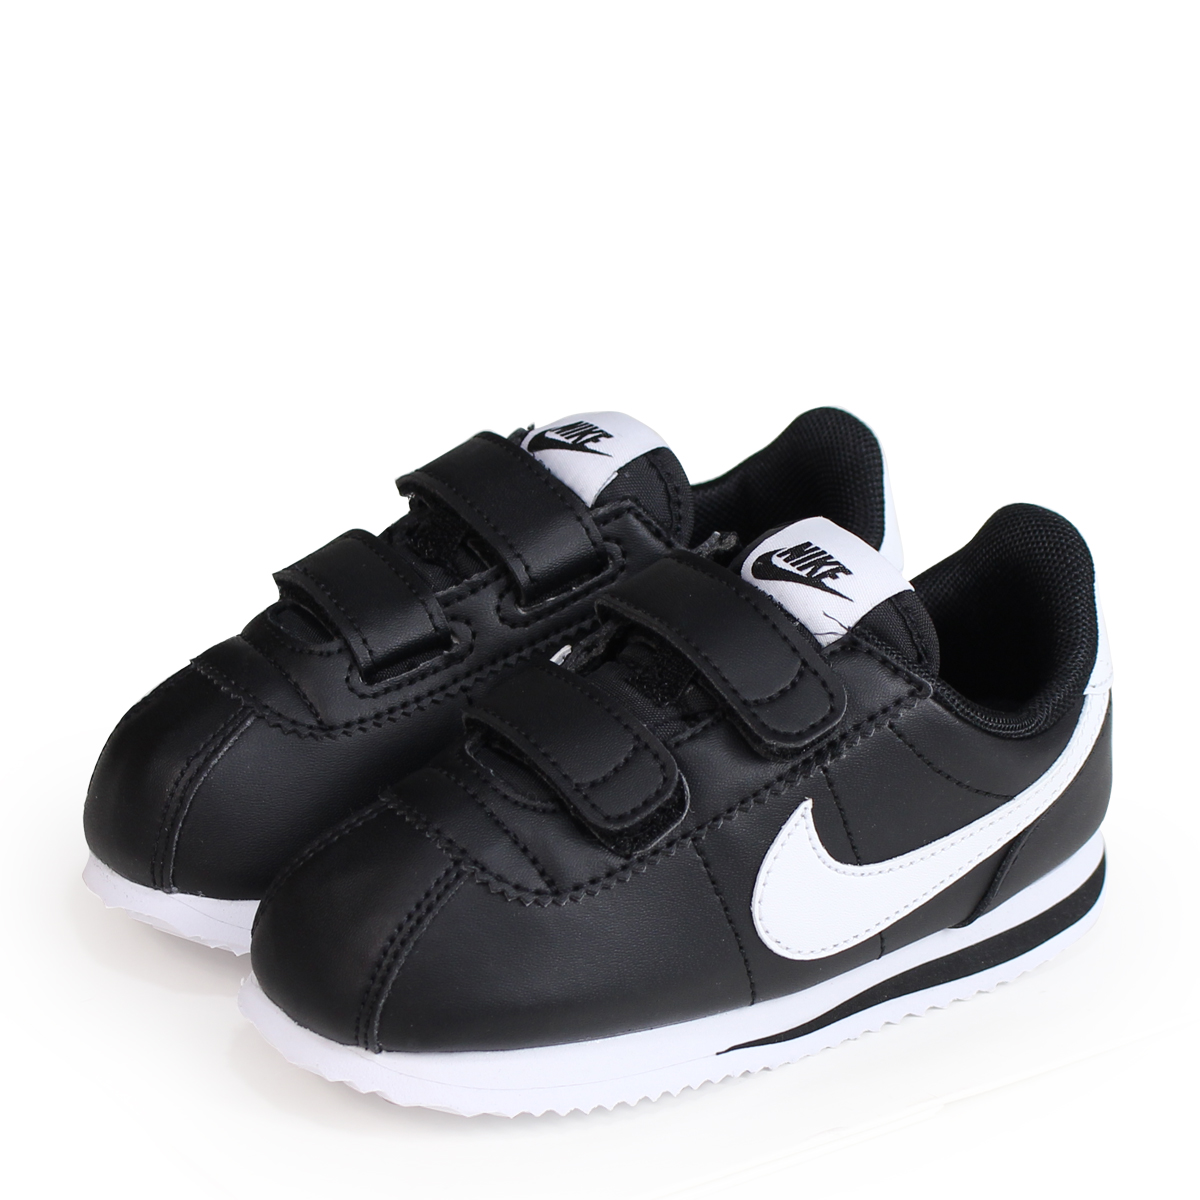 ... coupon nike cortez basic sl tdv 904769 001 black load planned shinnyu  load in reservation product 82eb6c26c